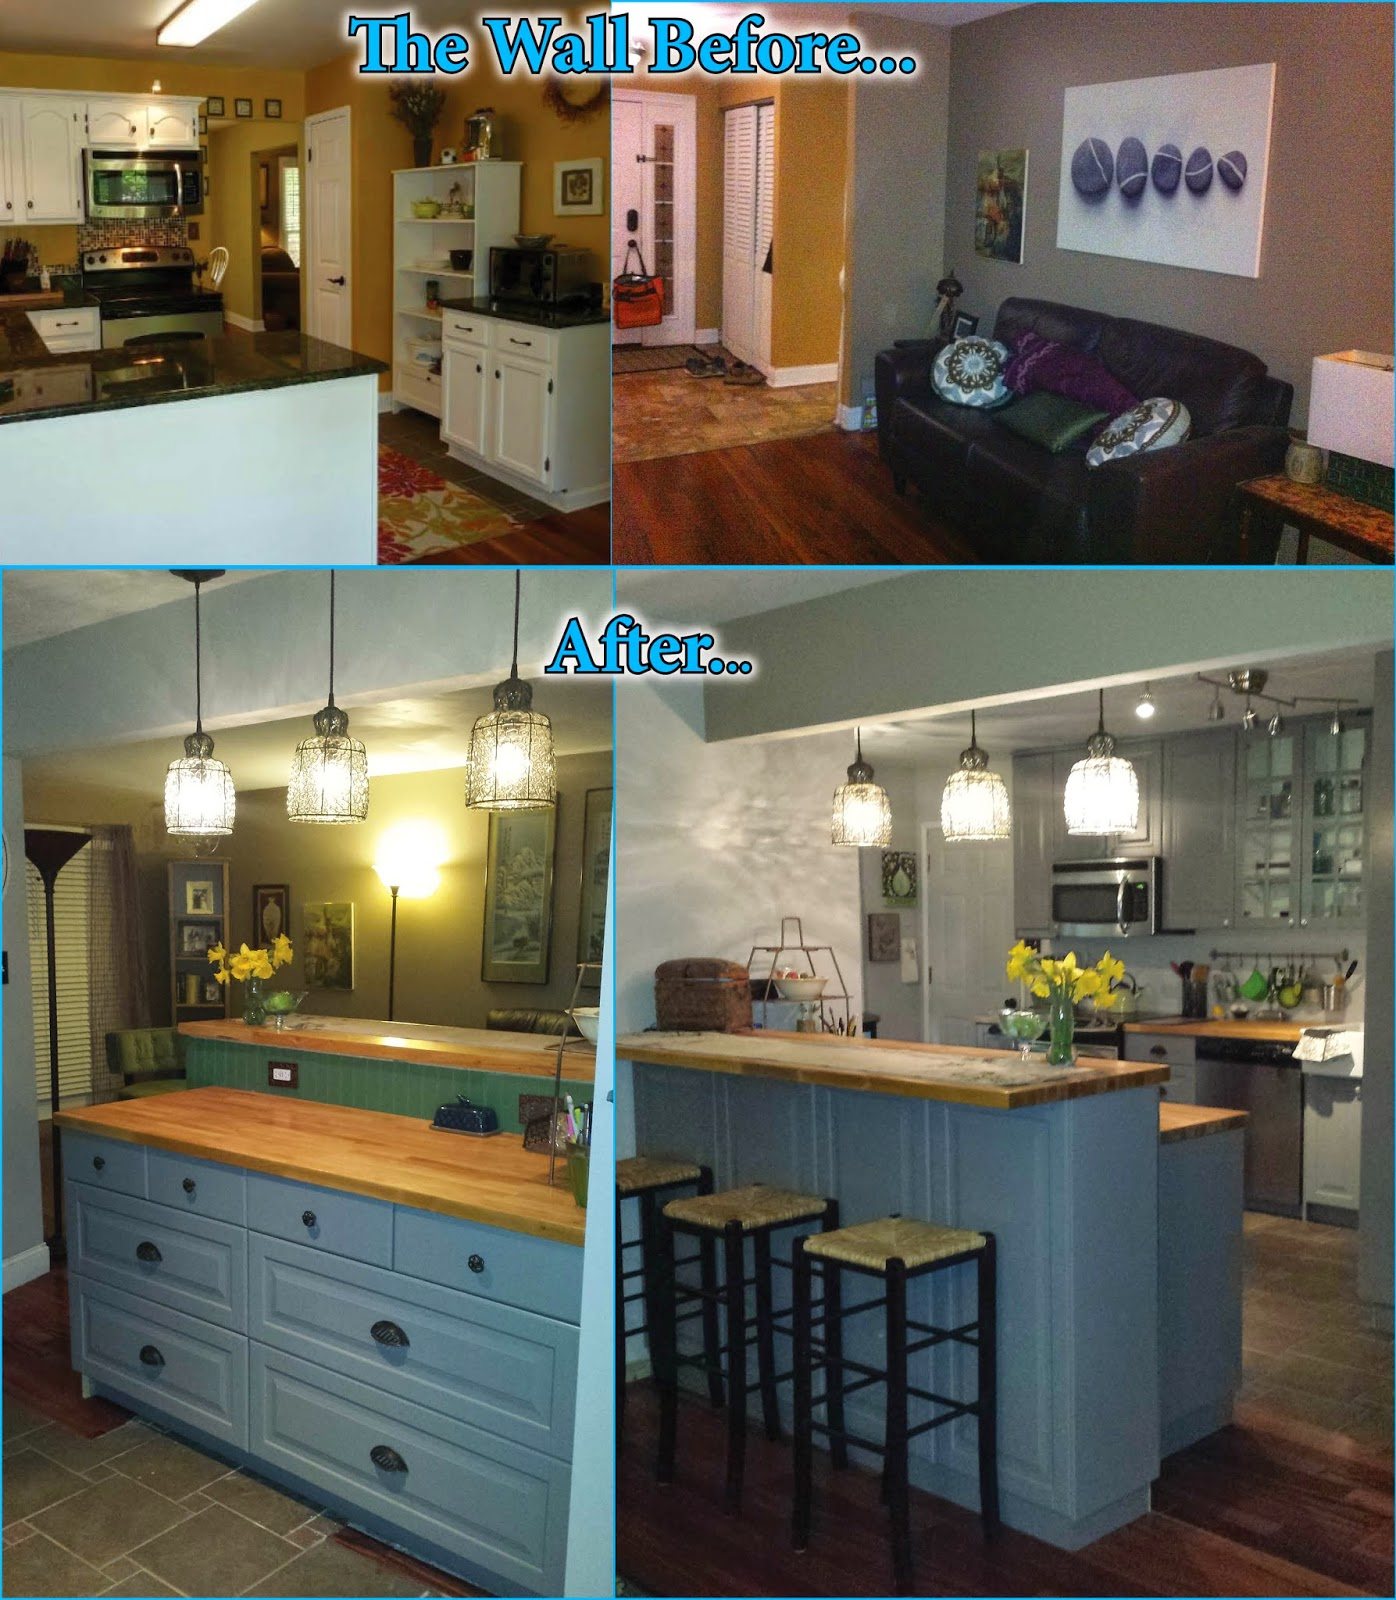 Kitchen Remodel Before And After Wall Removal Wildly Domesticated Kitchen Postwall The Open Look